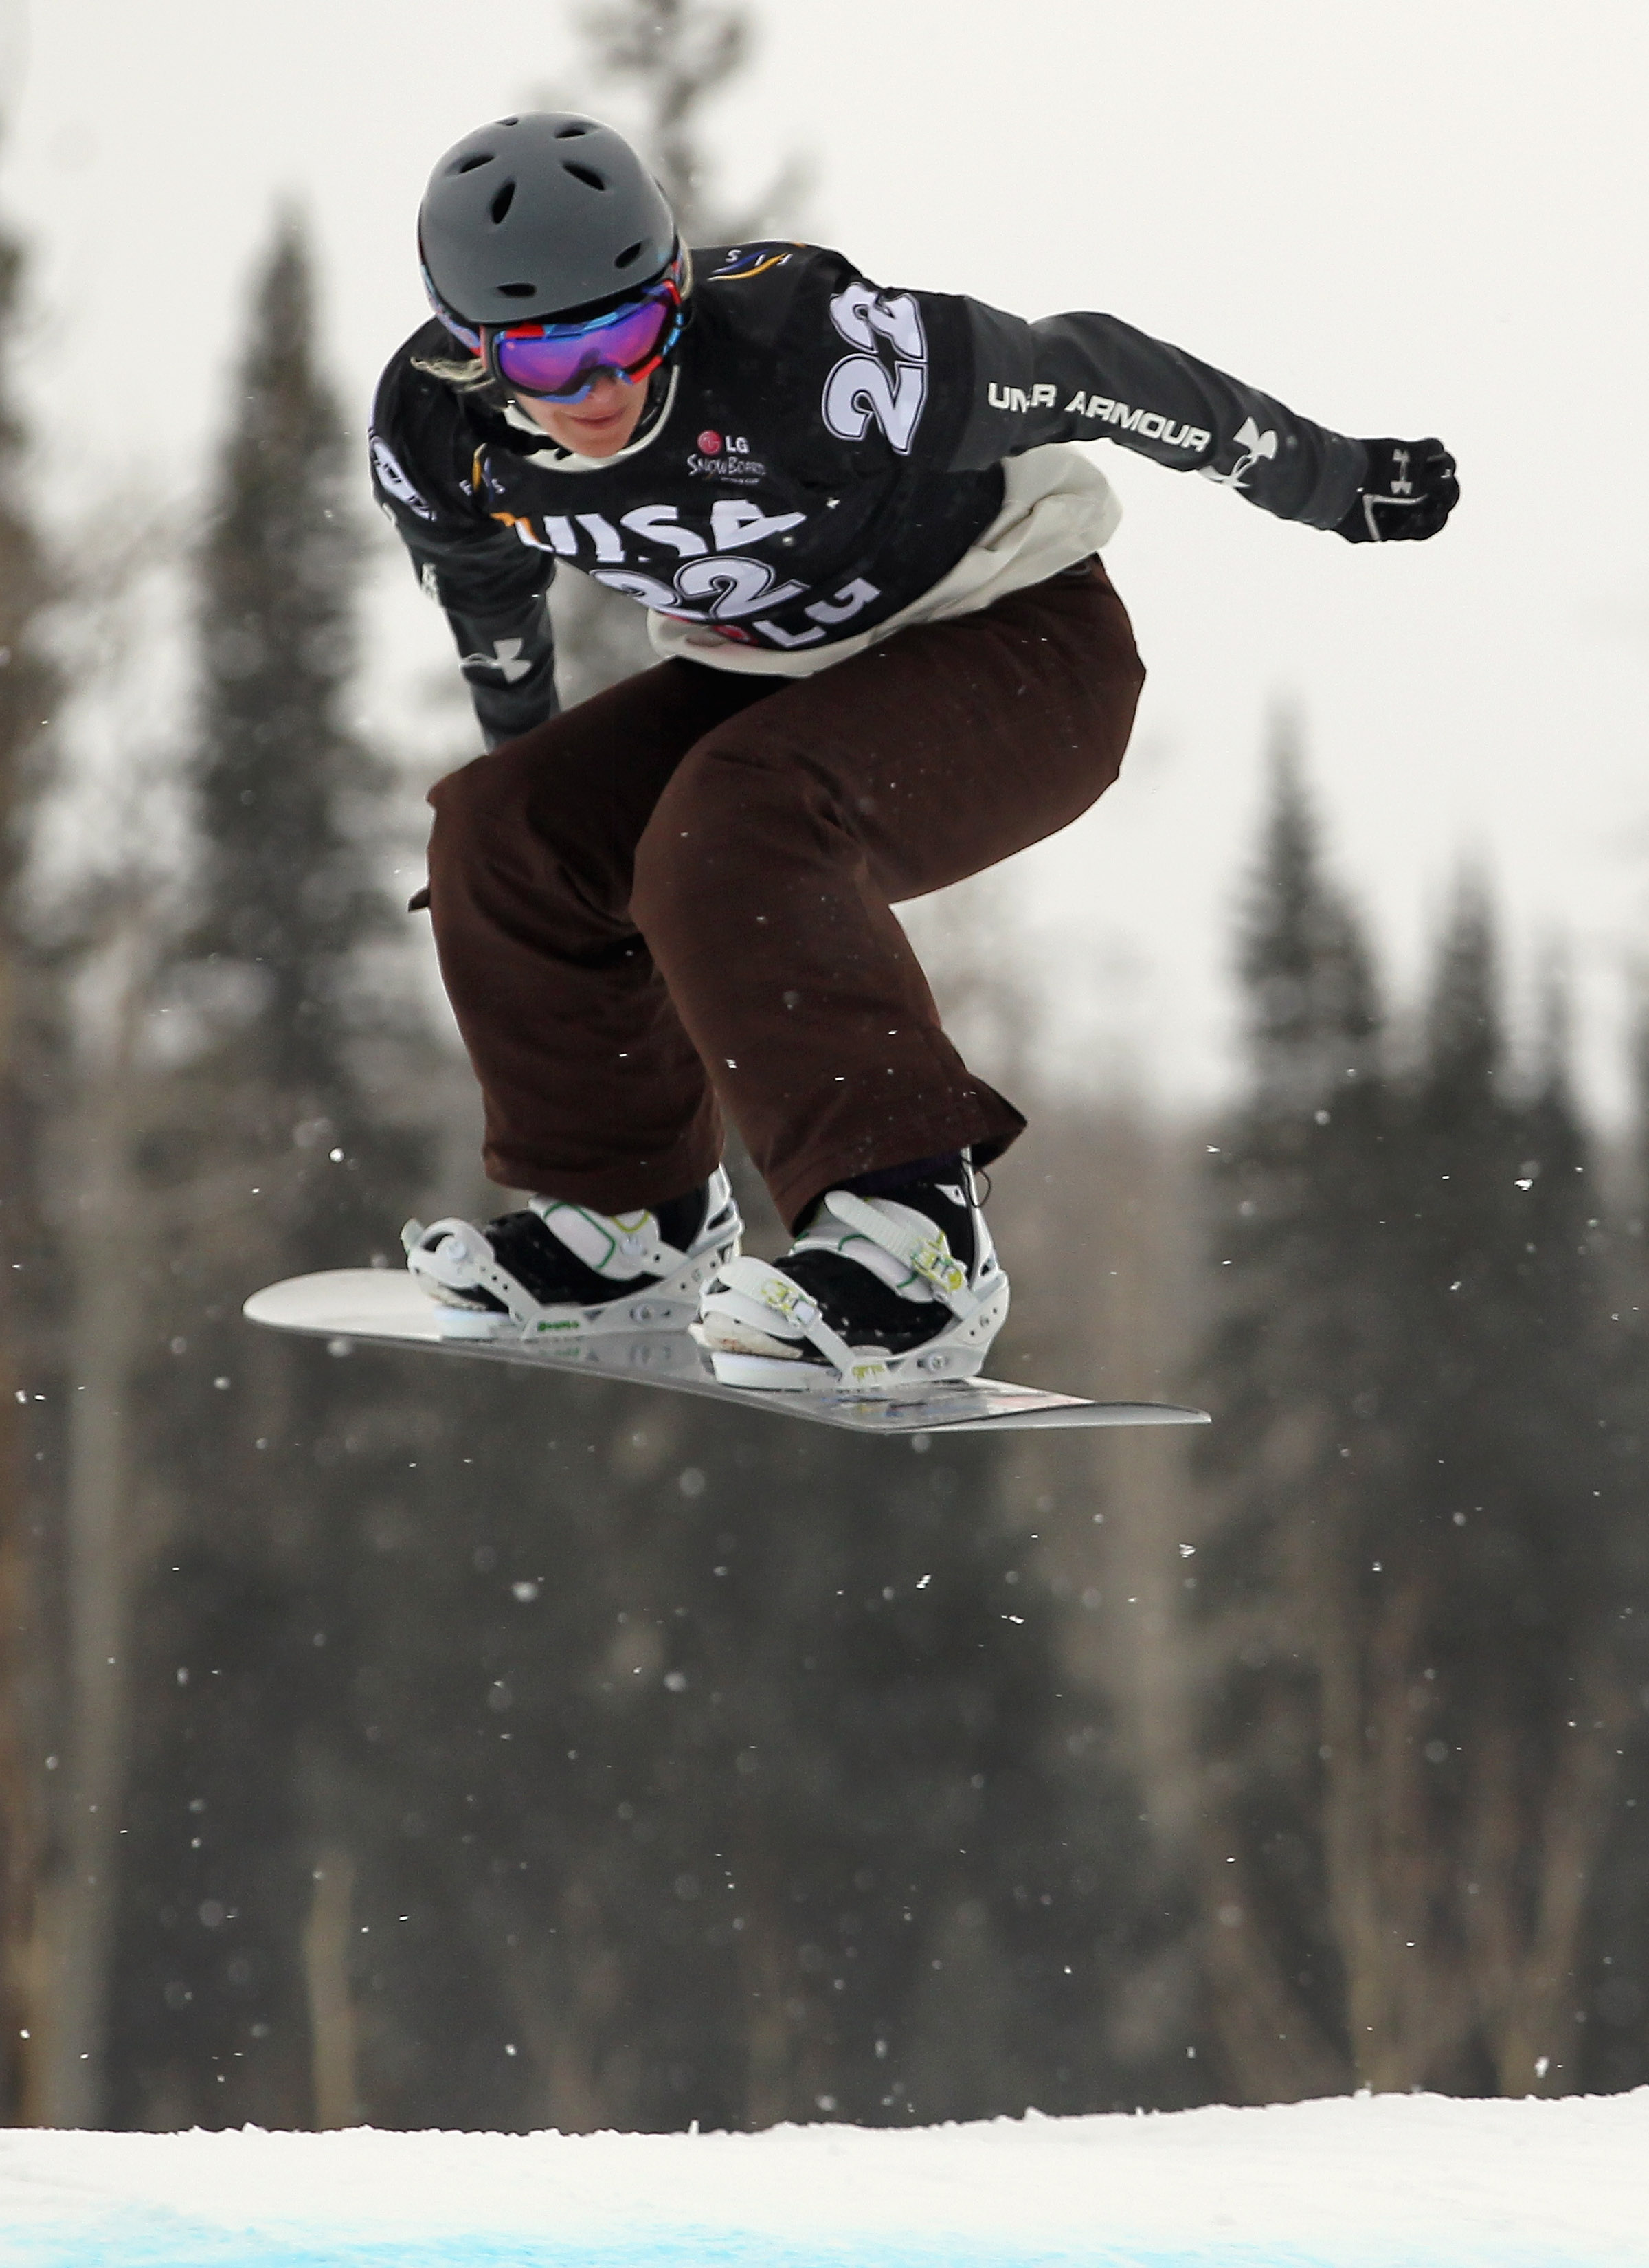 TELLURIDE, CO - DECEMBER 15:  Lindsey Jacobellis of the USA descends the course as she finished fifth during Women's Snowboard Cross Qualification at the LG Snowboard FIS World Cup on December 15, 2010 in Telluride, Colorado.  (Photo by Doug Pensinger/Get